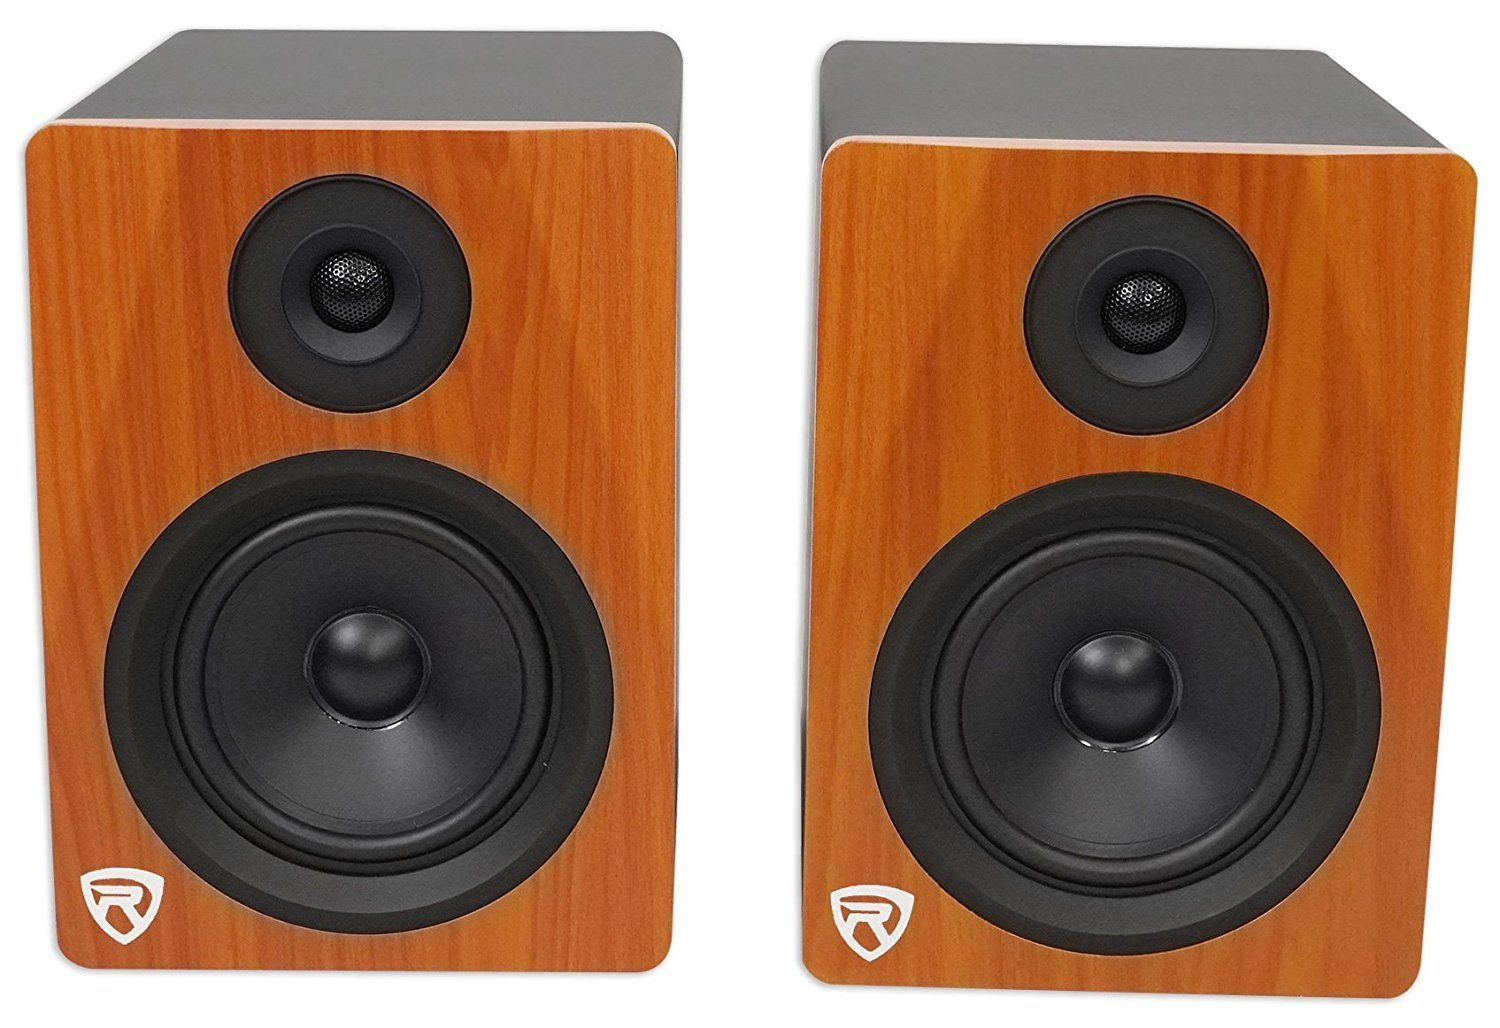 Rockville APM8W 8inch 2-Way 500W Active Powered USB Studio Monitor Speakers